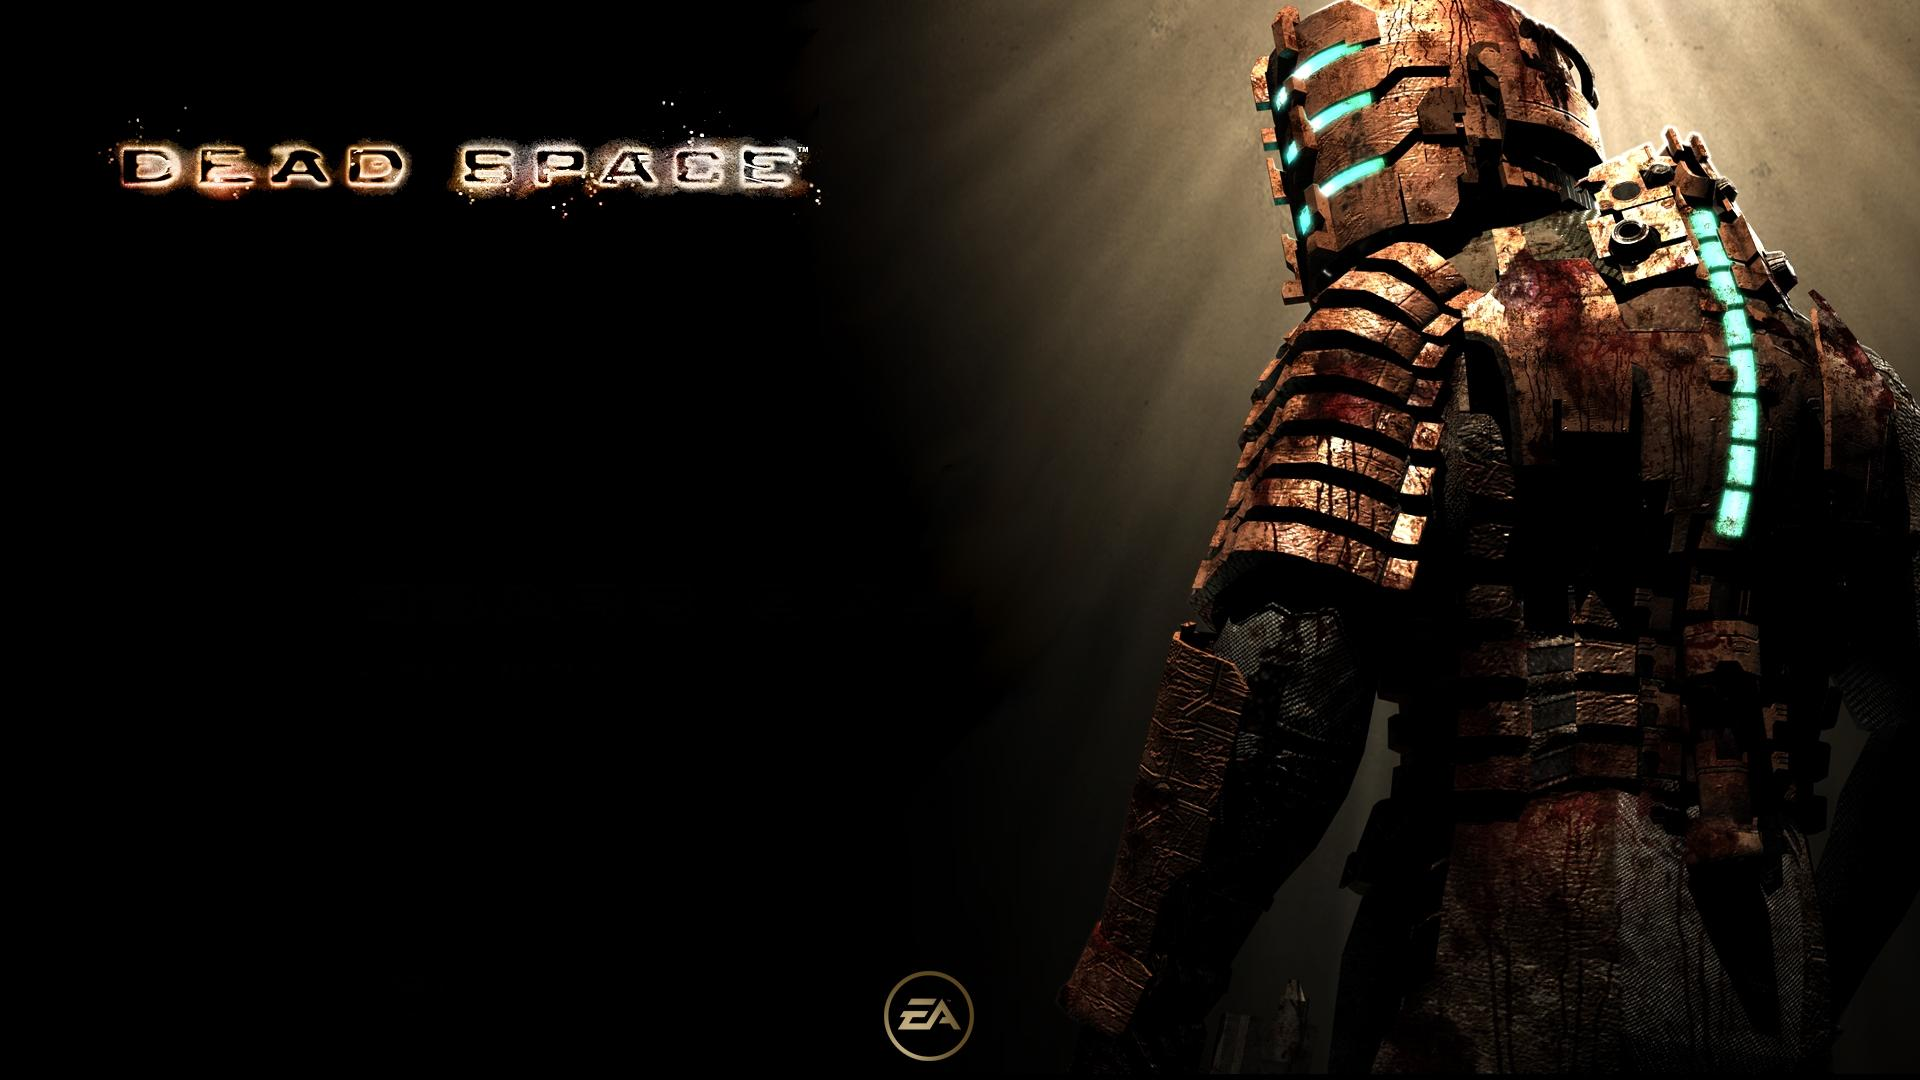 dead space 3 backgrounds